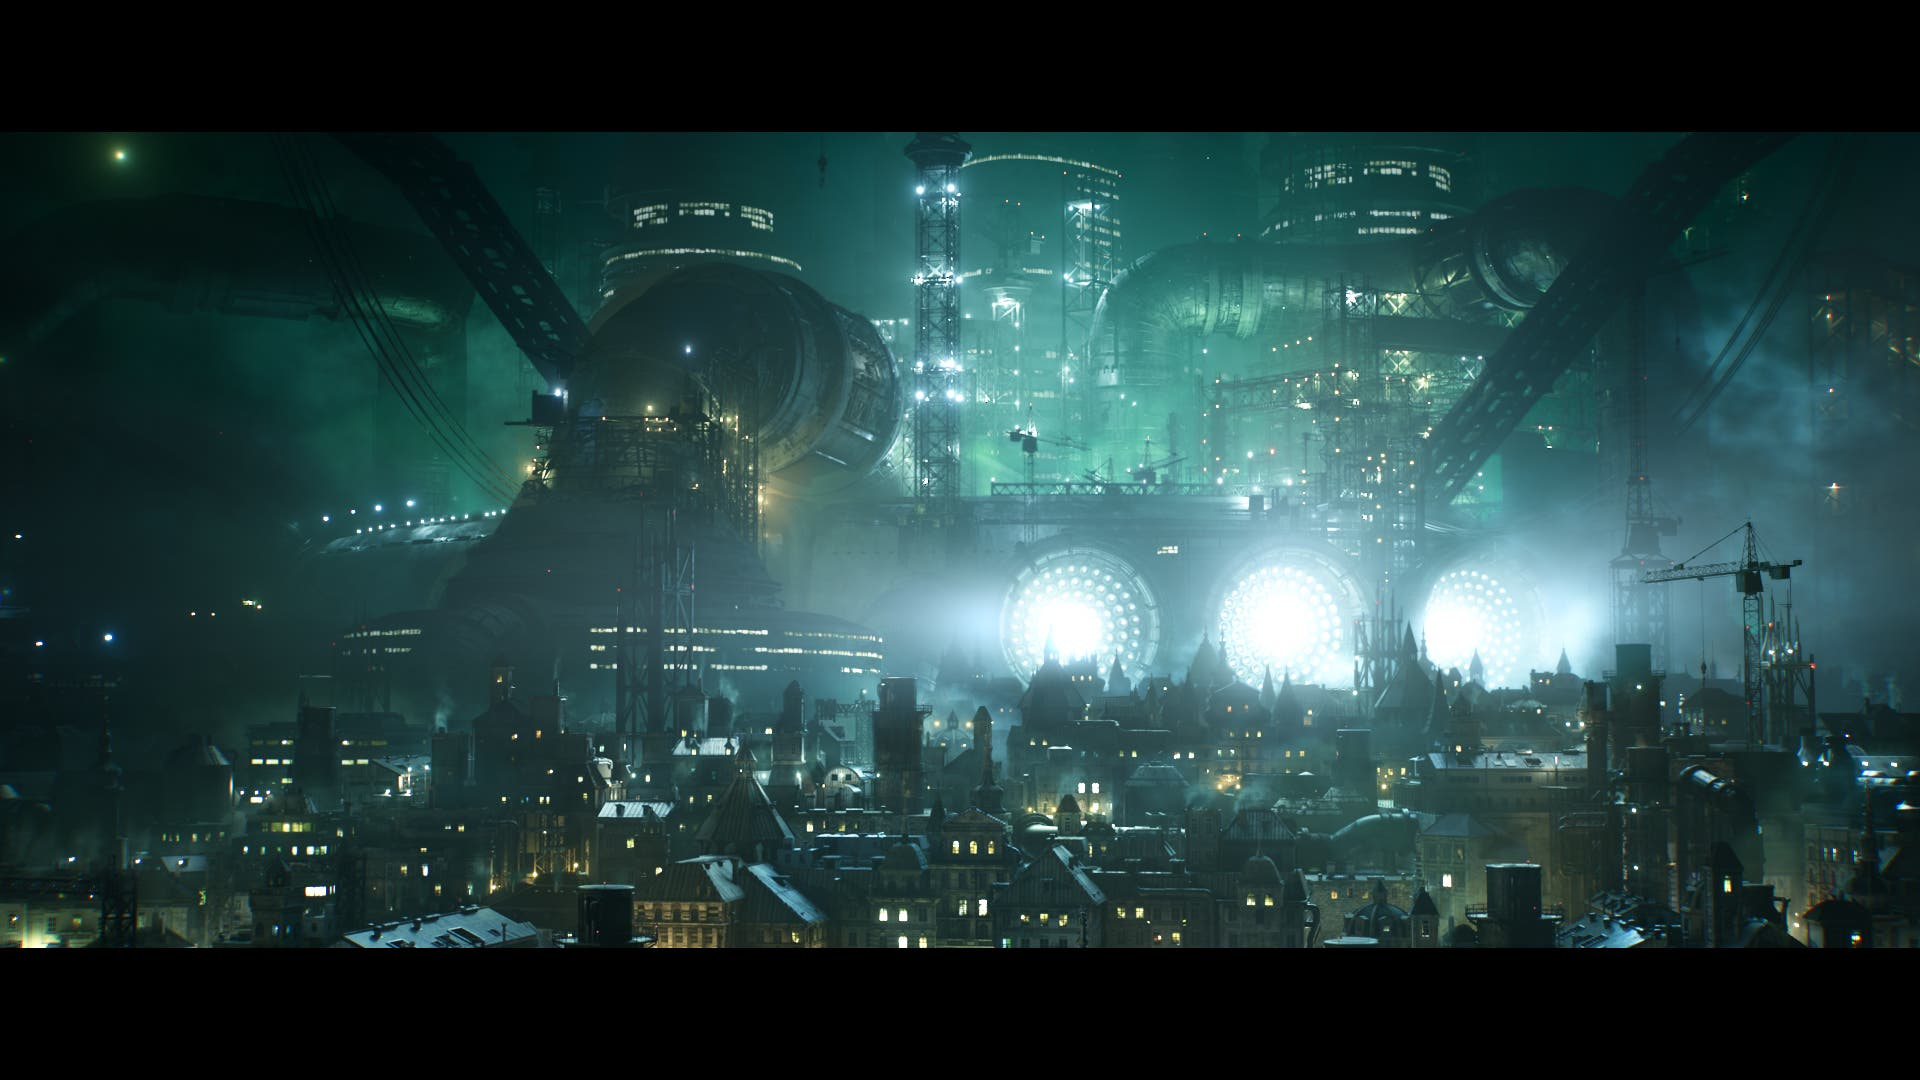 El remake de Final Fantasy VII no utilizará el Luminous Engine